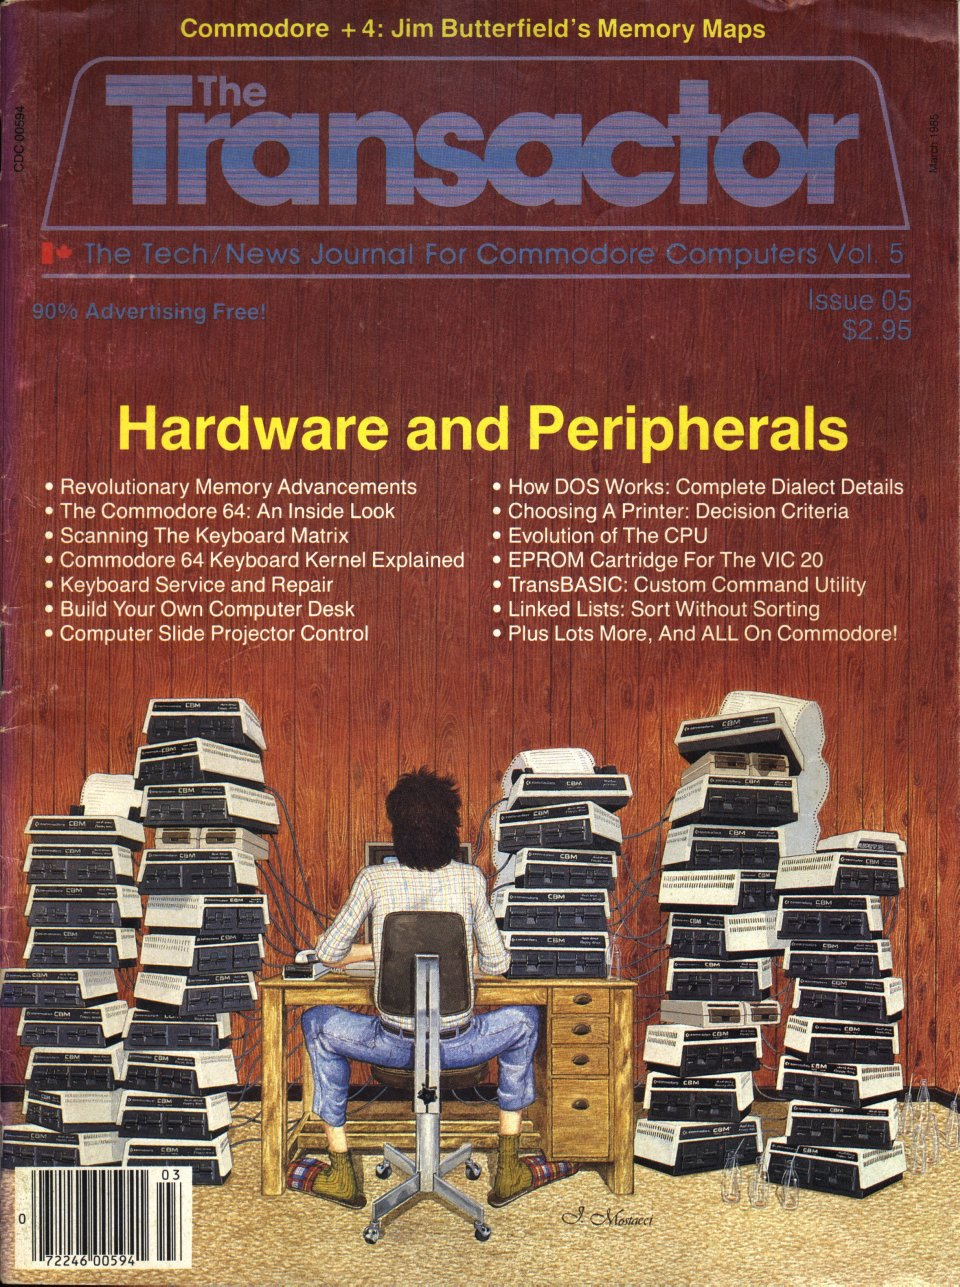 [Cover Page of The Transactor Volume 5, Issue 5: Hardware and Peripherals]